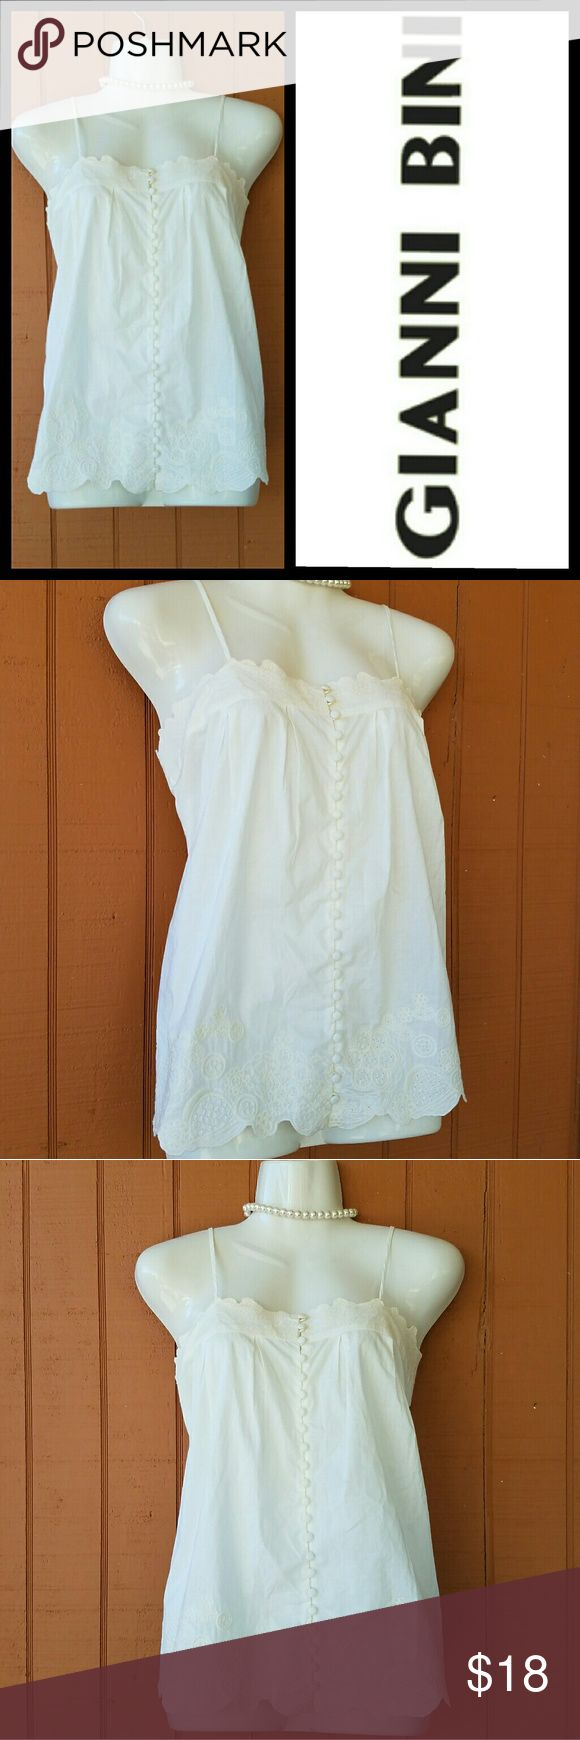 GIANNI BINI COTTON SPAGHETTI TOP SZ 6 CUTE GIANNI BINI TOP ADJUSTABLE STRAPS 100% COTTON FLAWS:MAKEUP STAIN INSIDE AND OUT PLEASE SEE PICTURES #7 AND #8(MAY BE REMOVED) OVERALL IN OK PRELOVED CONDITION Gianni Bini Tops Blouses